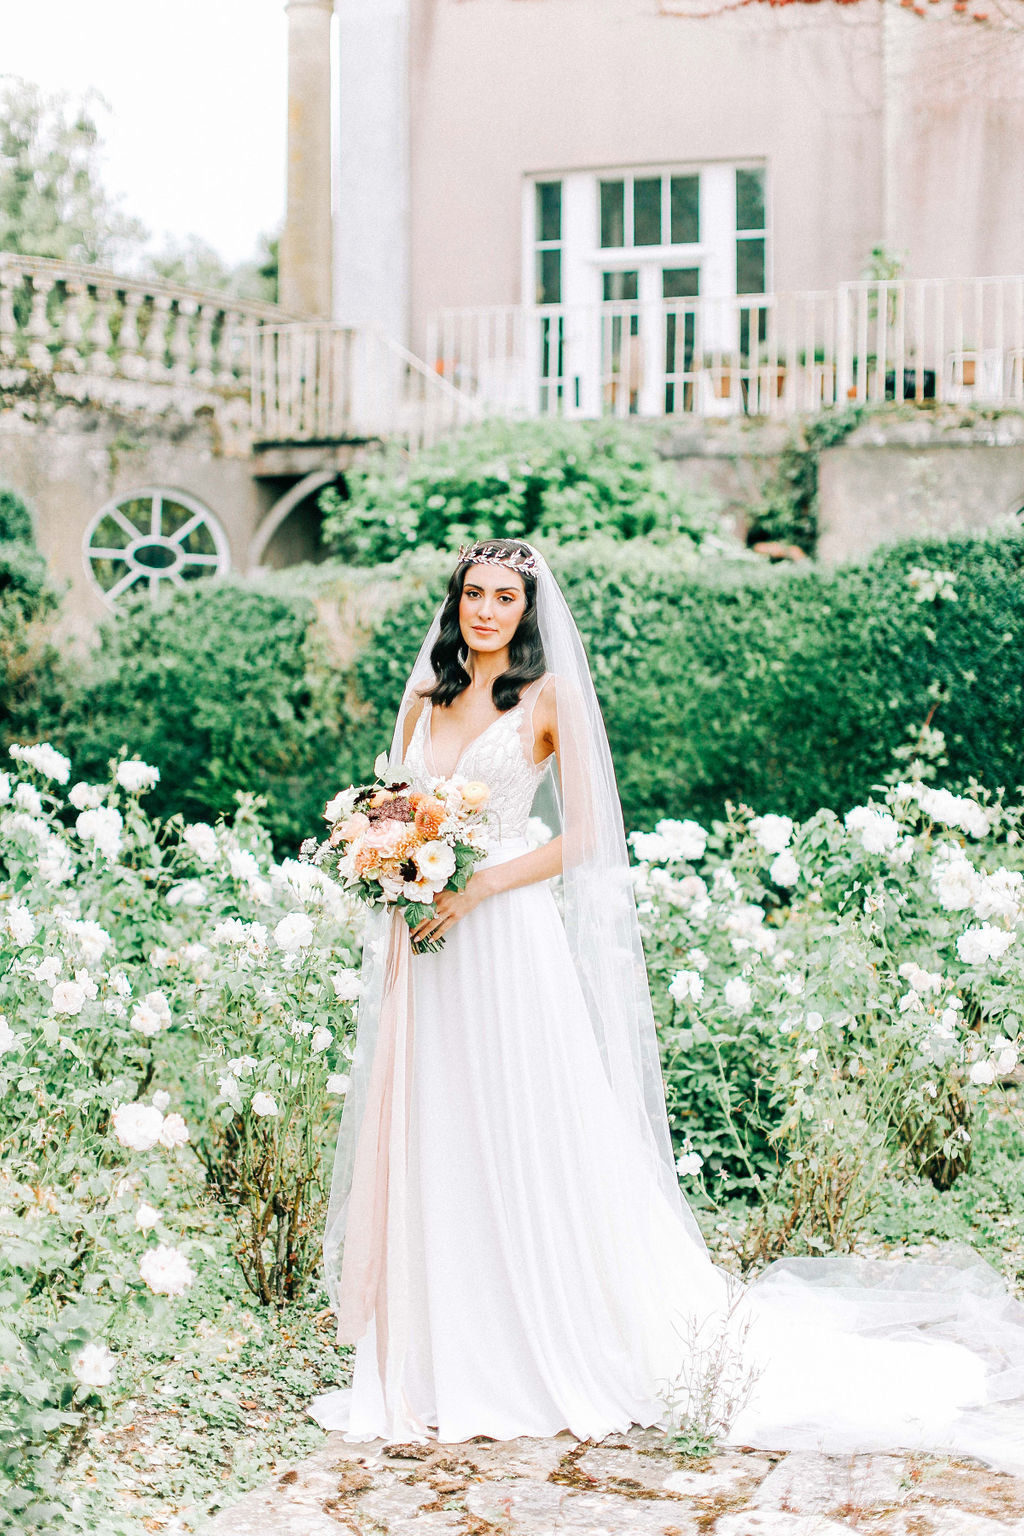 Elegant Wedding Dress for Country House Wedding Venue Hampshire